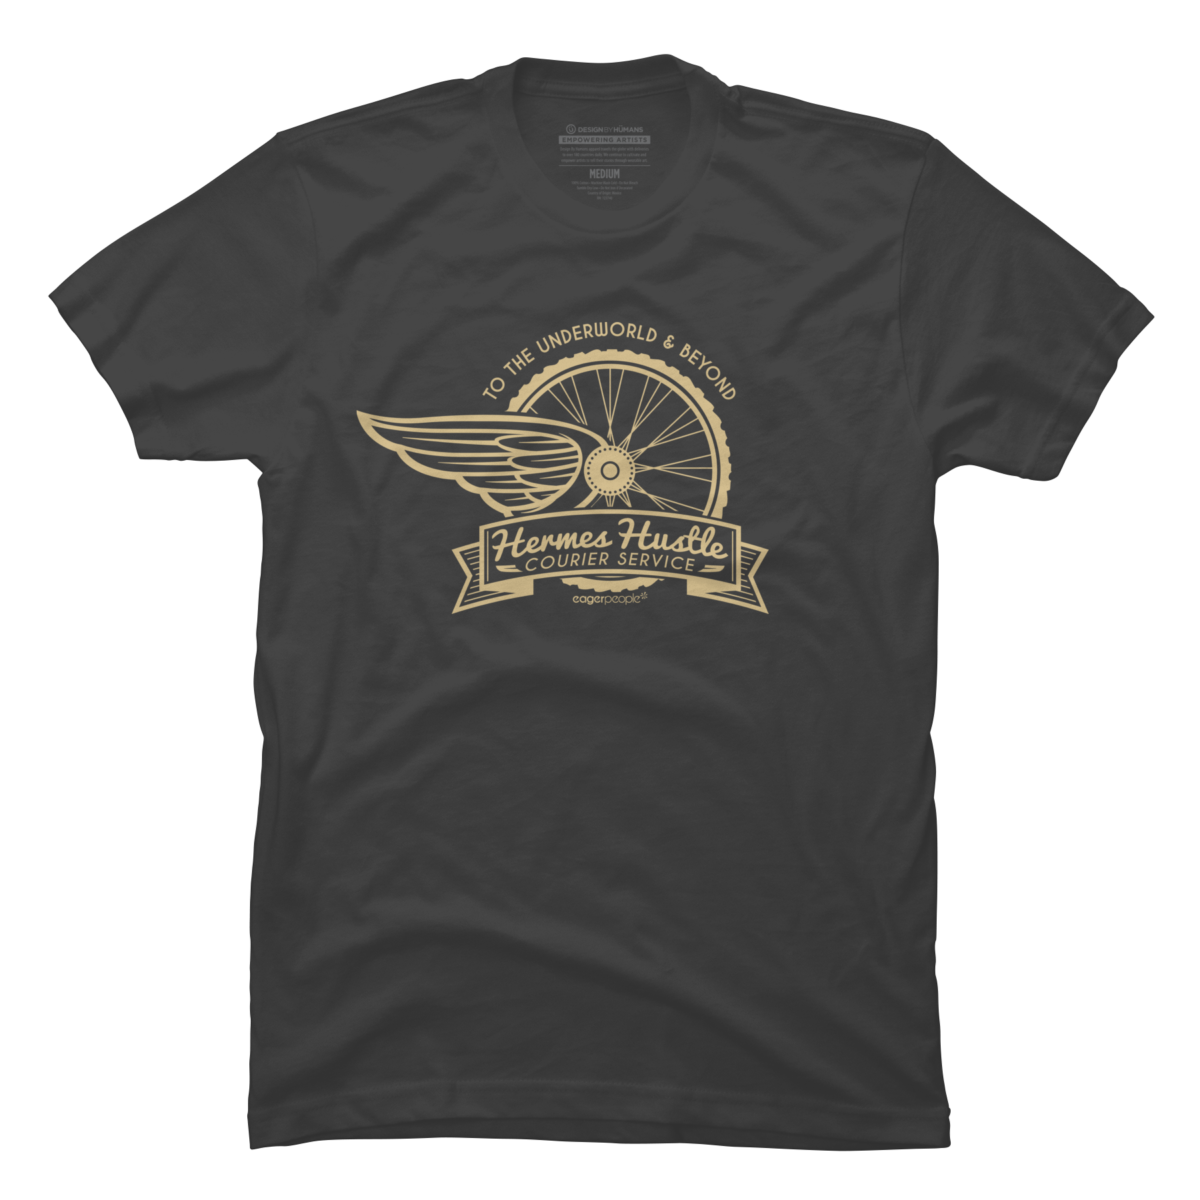 Hermes Hustle Courier Service Men's T-Shirt Hermes Hustle Courier Service is a cozy ring spun cotton Grey shirt designed by eagerpeople. This Men's shirt design is featured in bicycle, art styles, retro, themes, transportation, typography, vintage designs. Shop DesignByHumans.com for the best selection of cool graphic tees, tank tops, sweatshirts, notebooks, phone cases, and art prints.